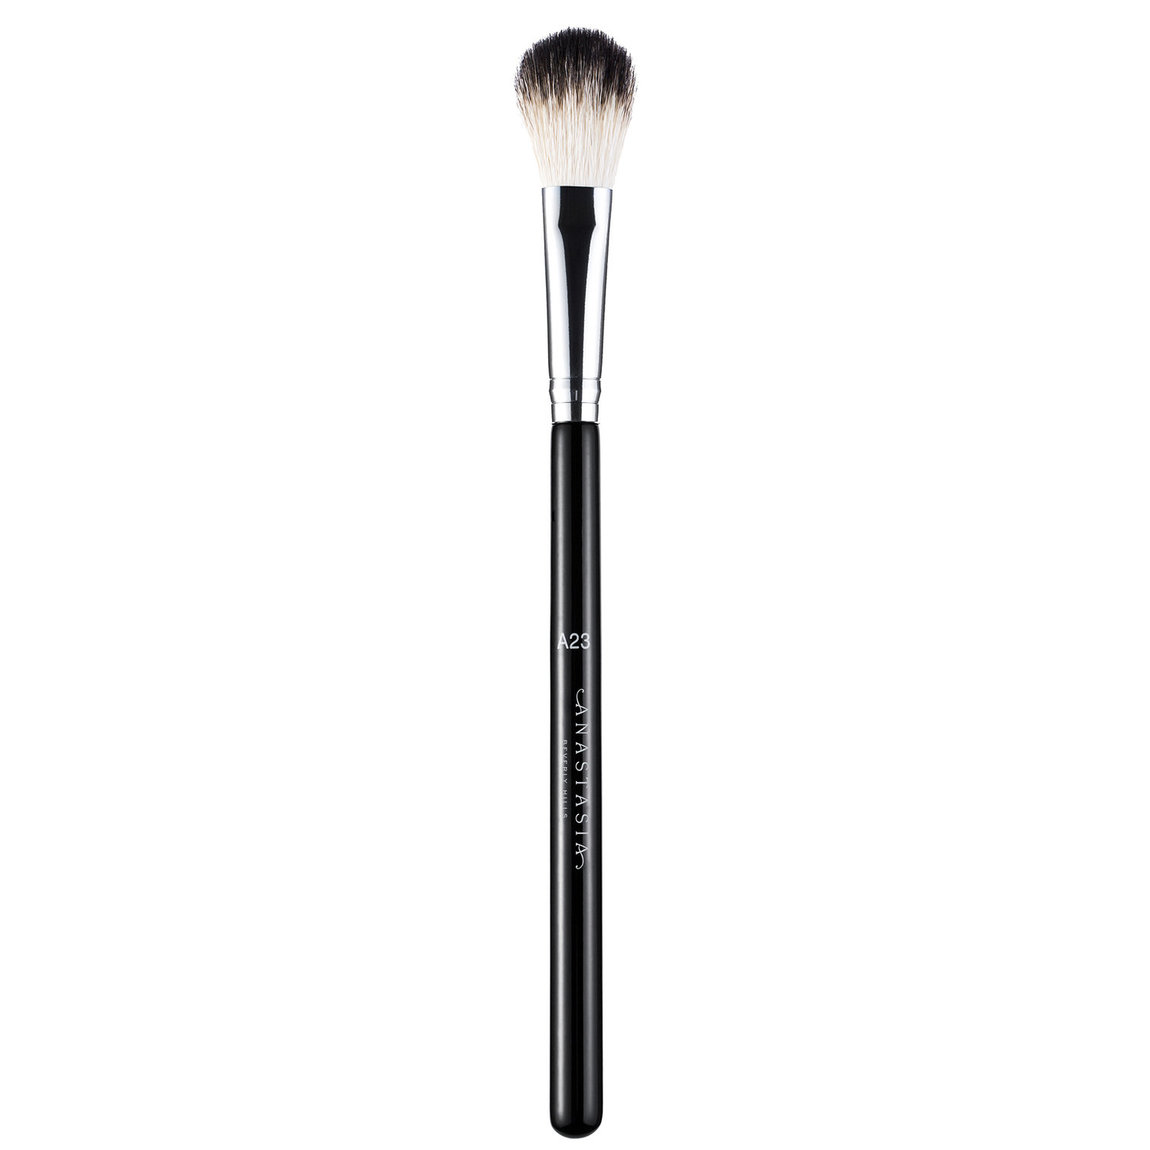 Anastasia Beverly Hills A23 Pro Brush - Large Tapered Blending Brush product smear.